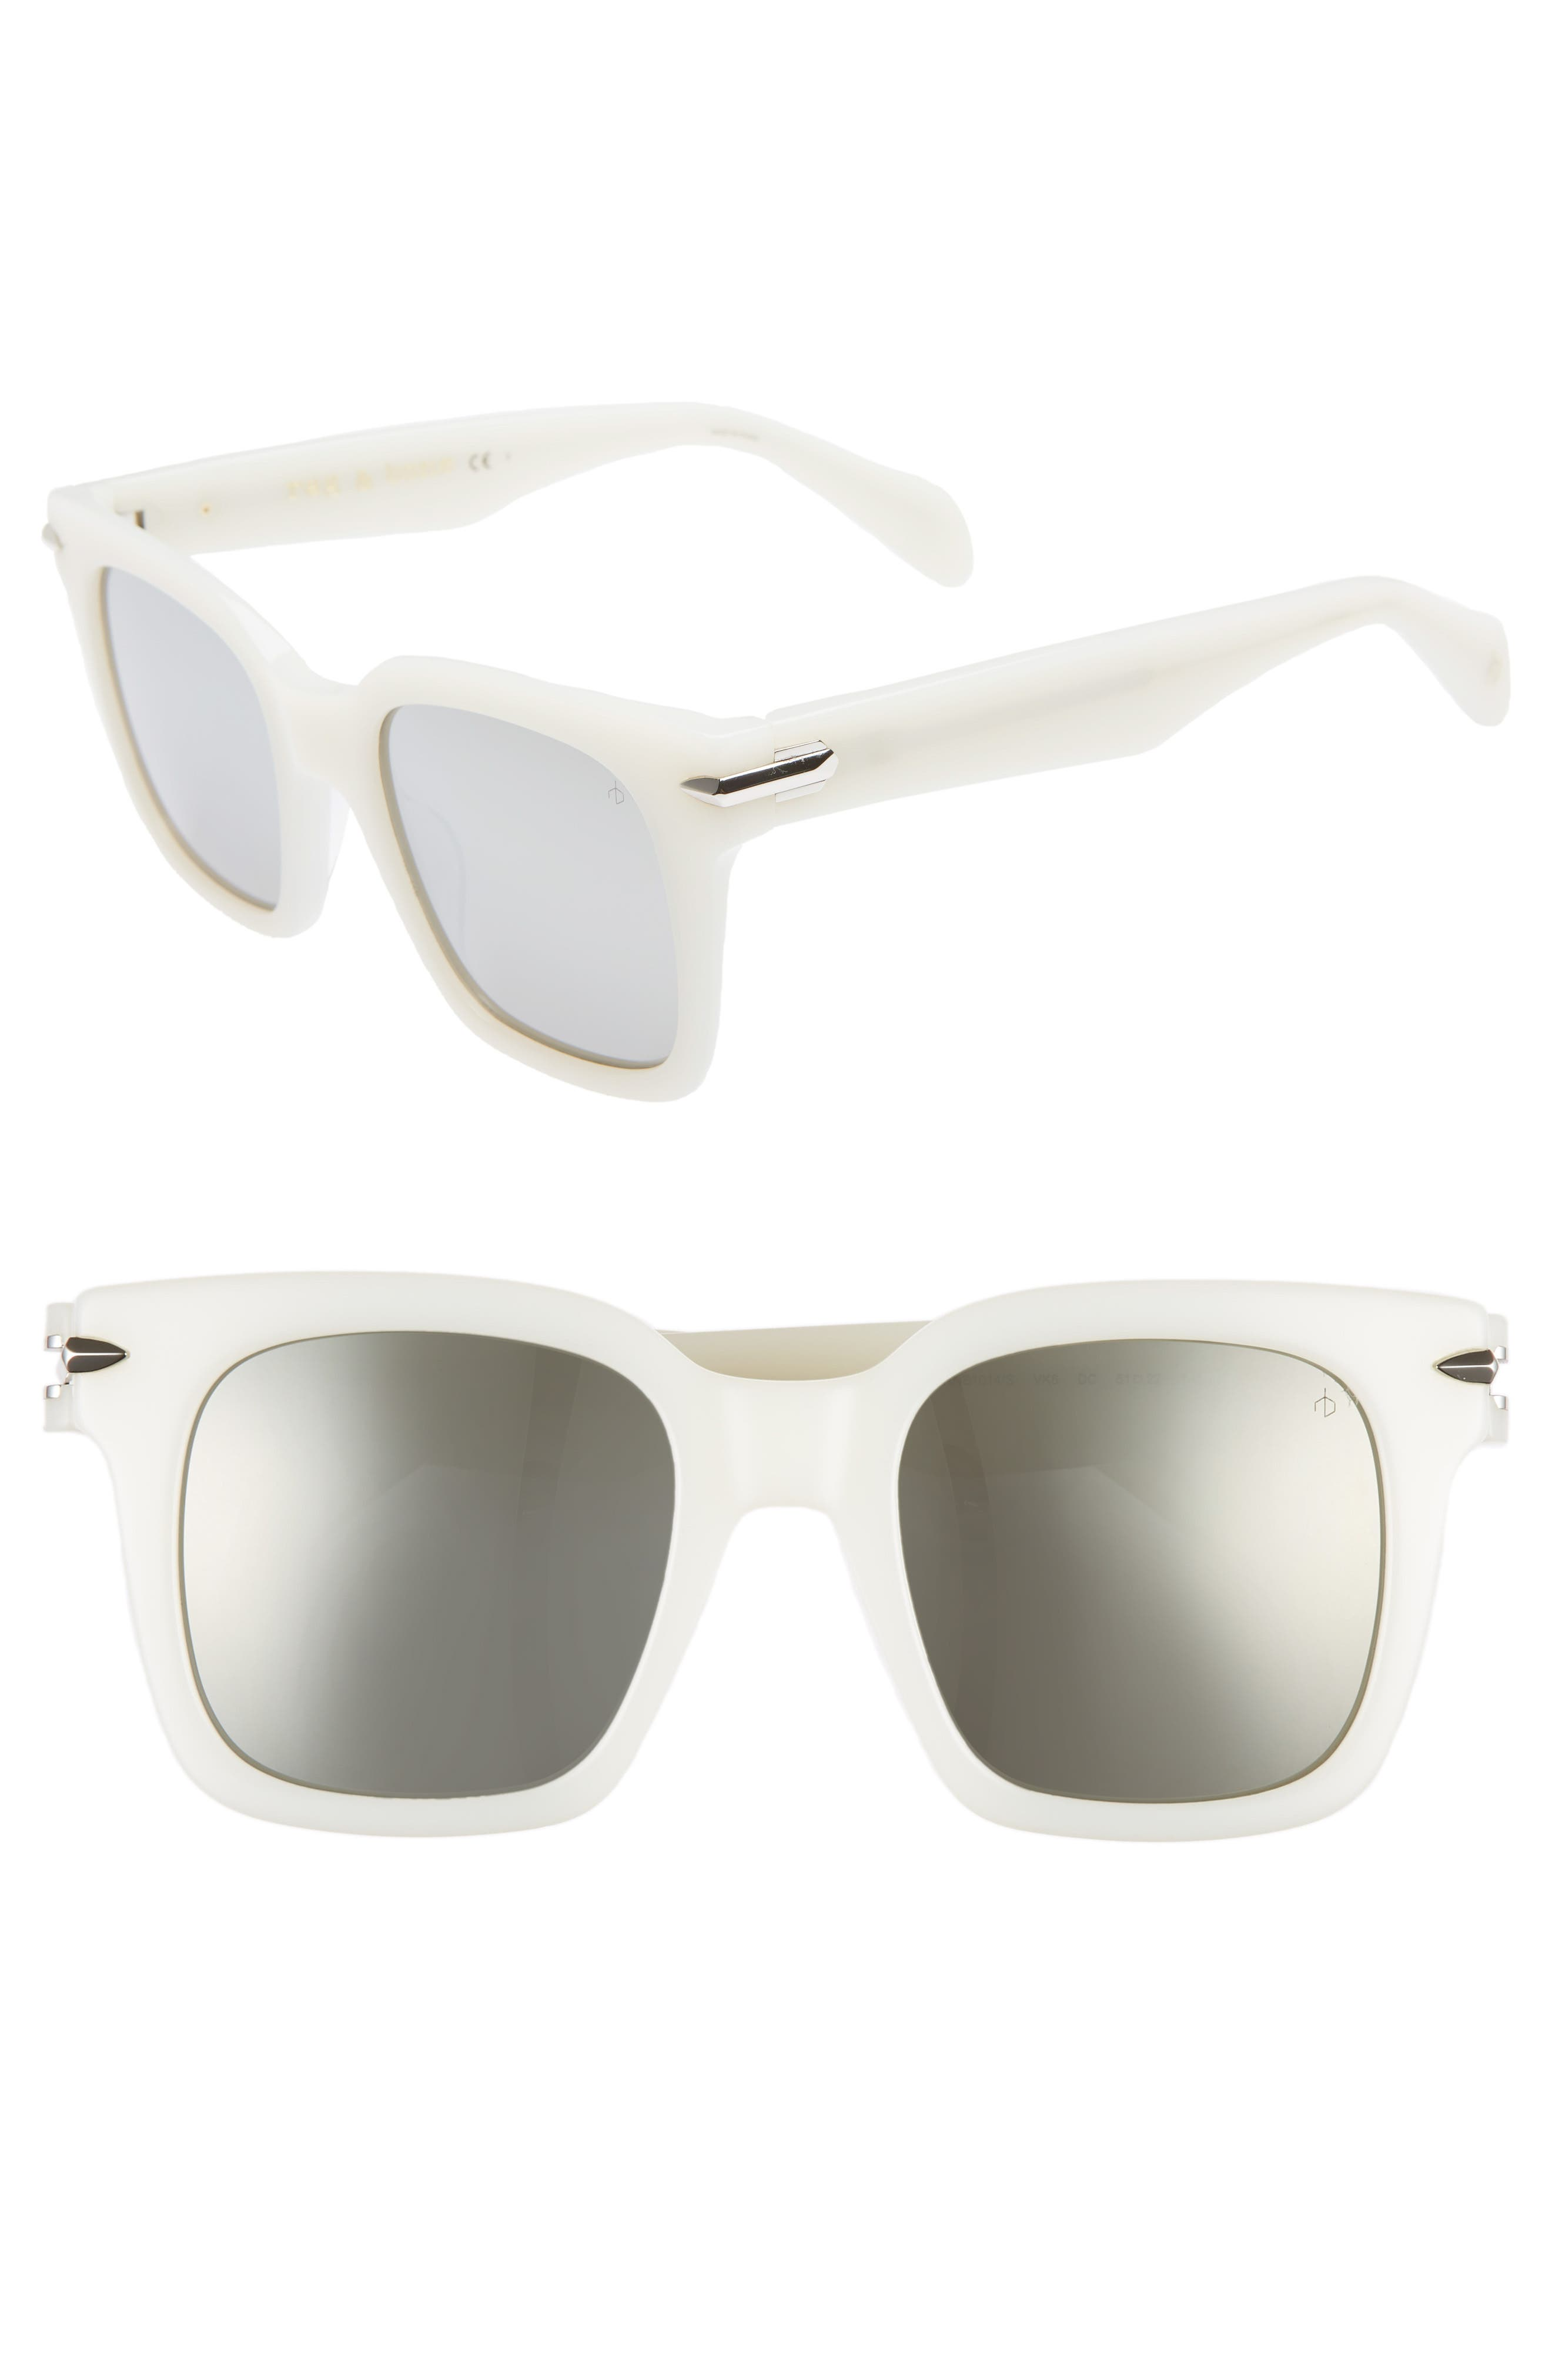 51mm Polarized Mirrored Square Sunglasses,                             Main thumbnail 1, color,                             WHITE